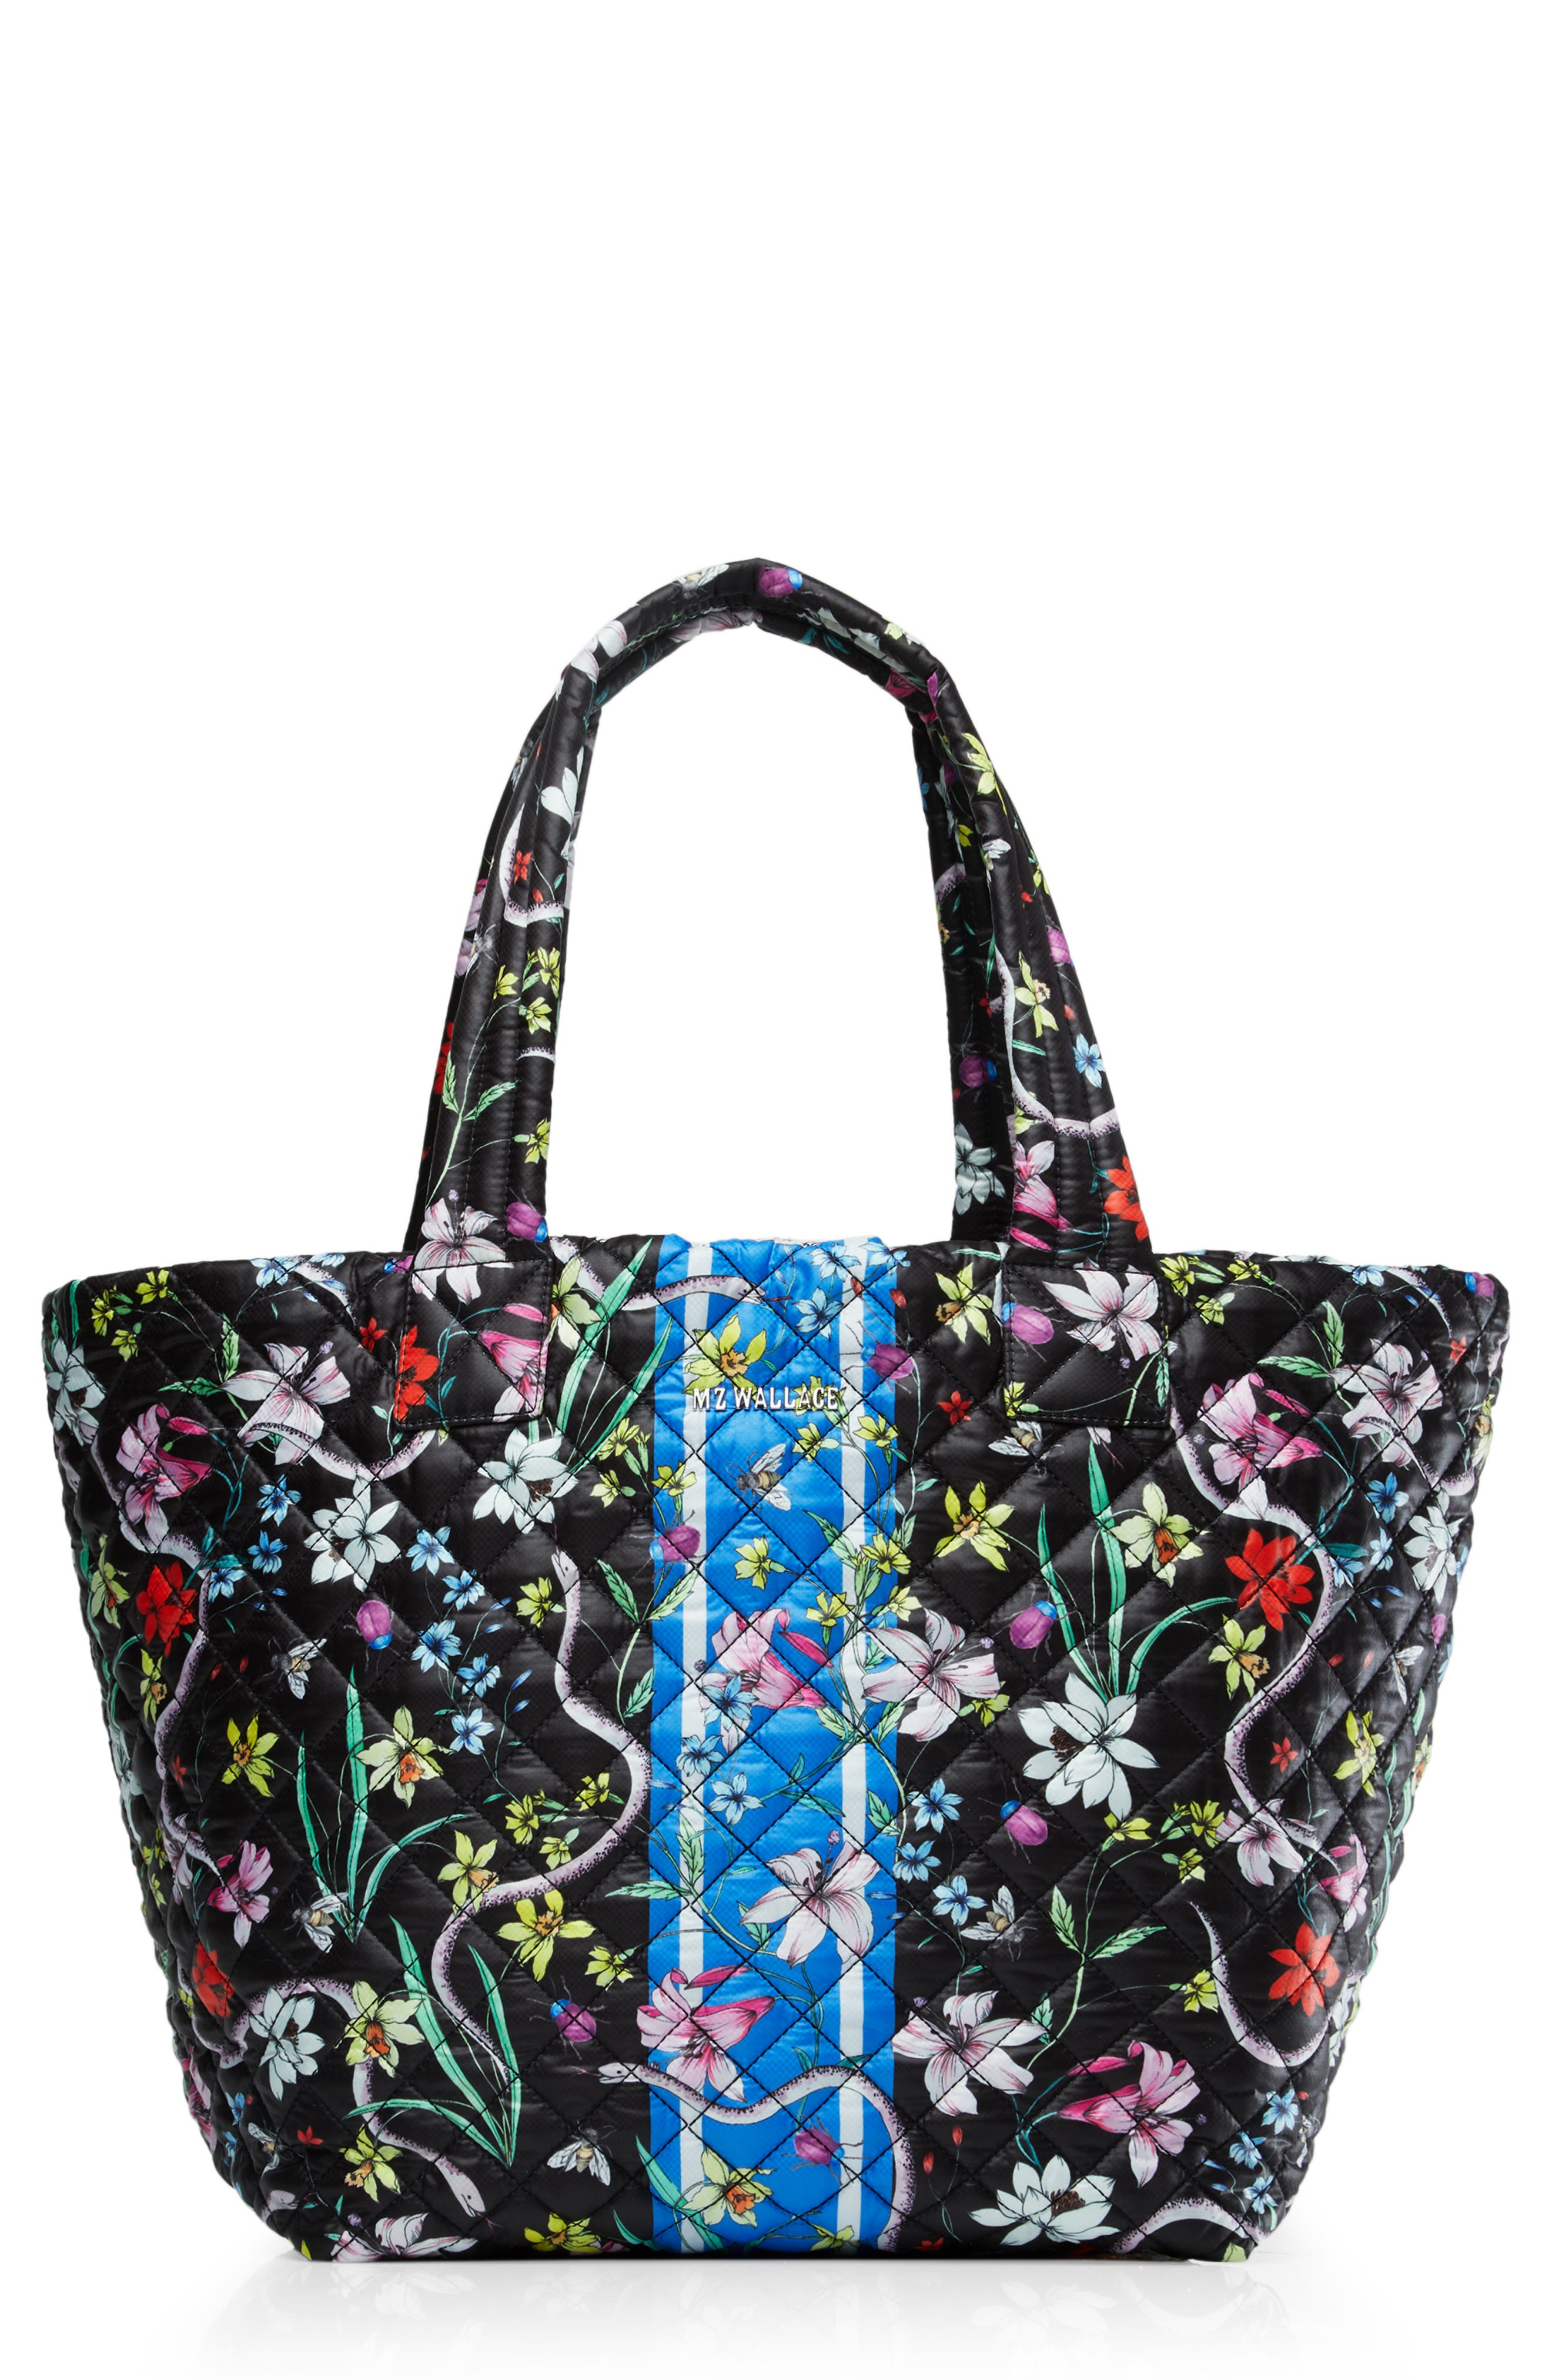 d2b6b16ef2ee Metallic Tote Bags for Women: Leather, Coated Canvas, & Neoprene   Nordstrom